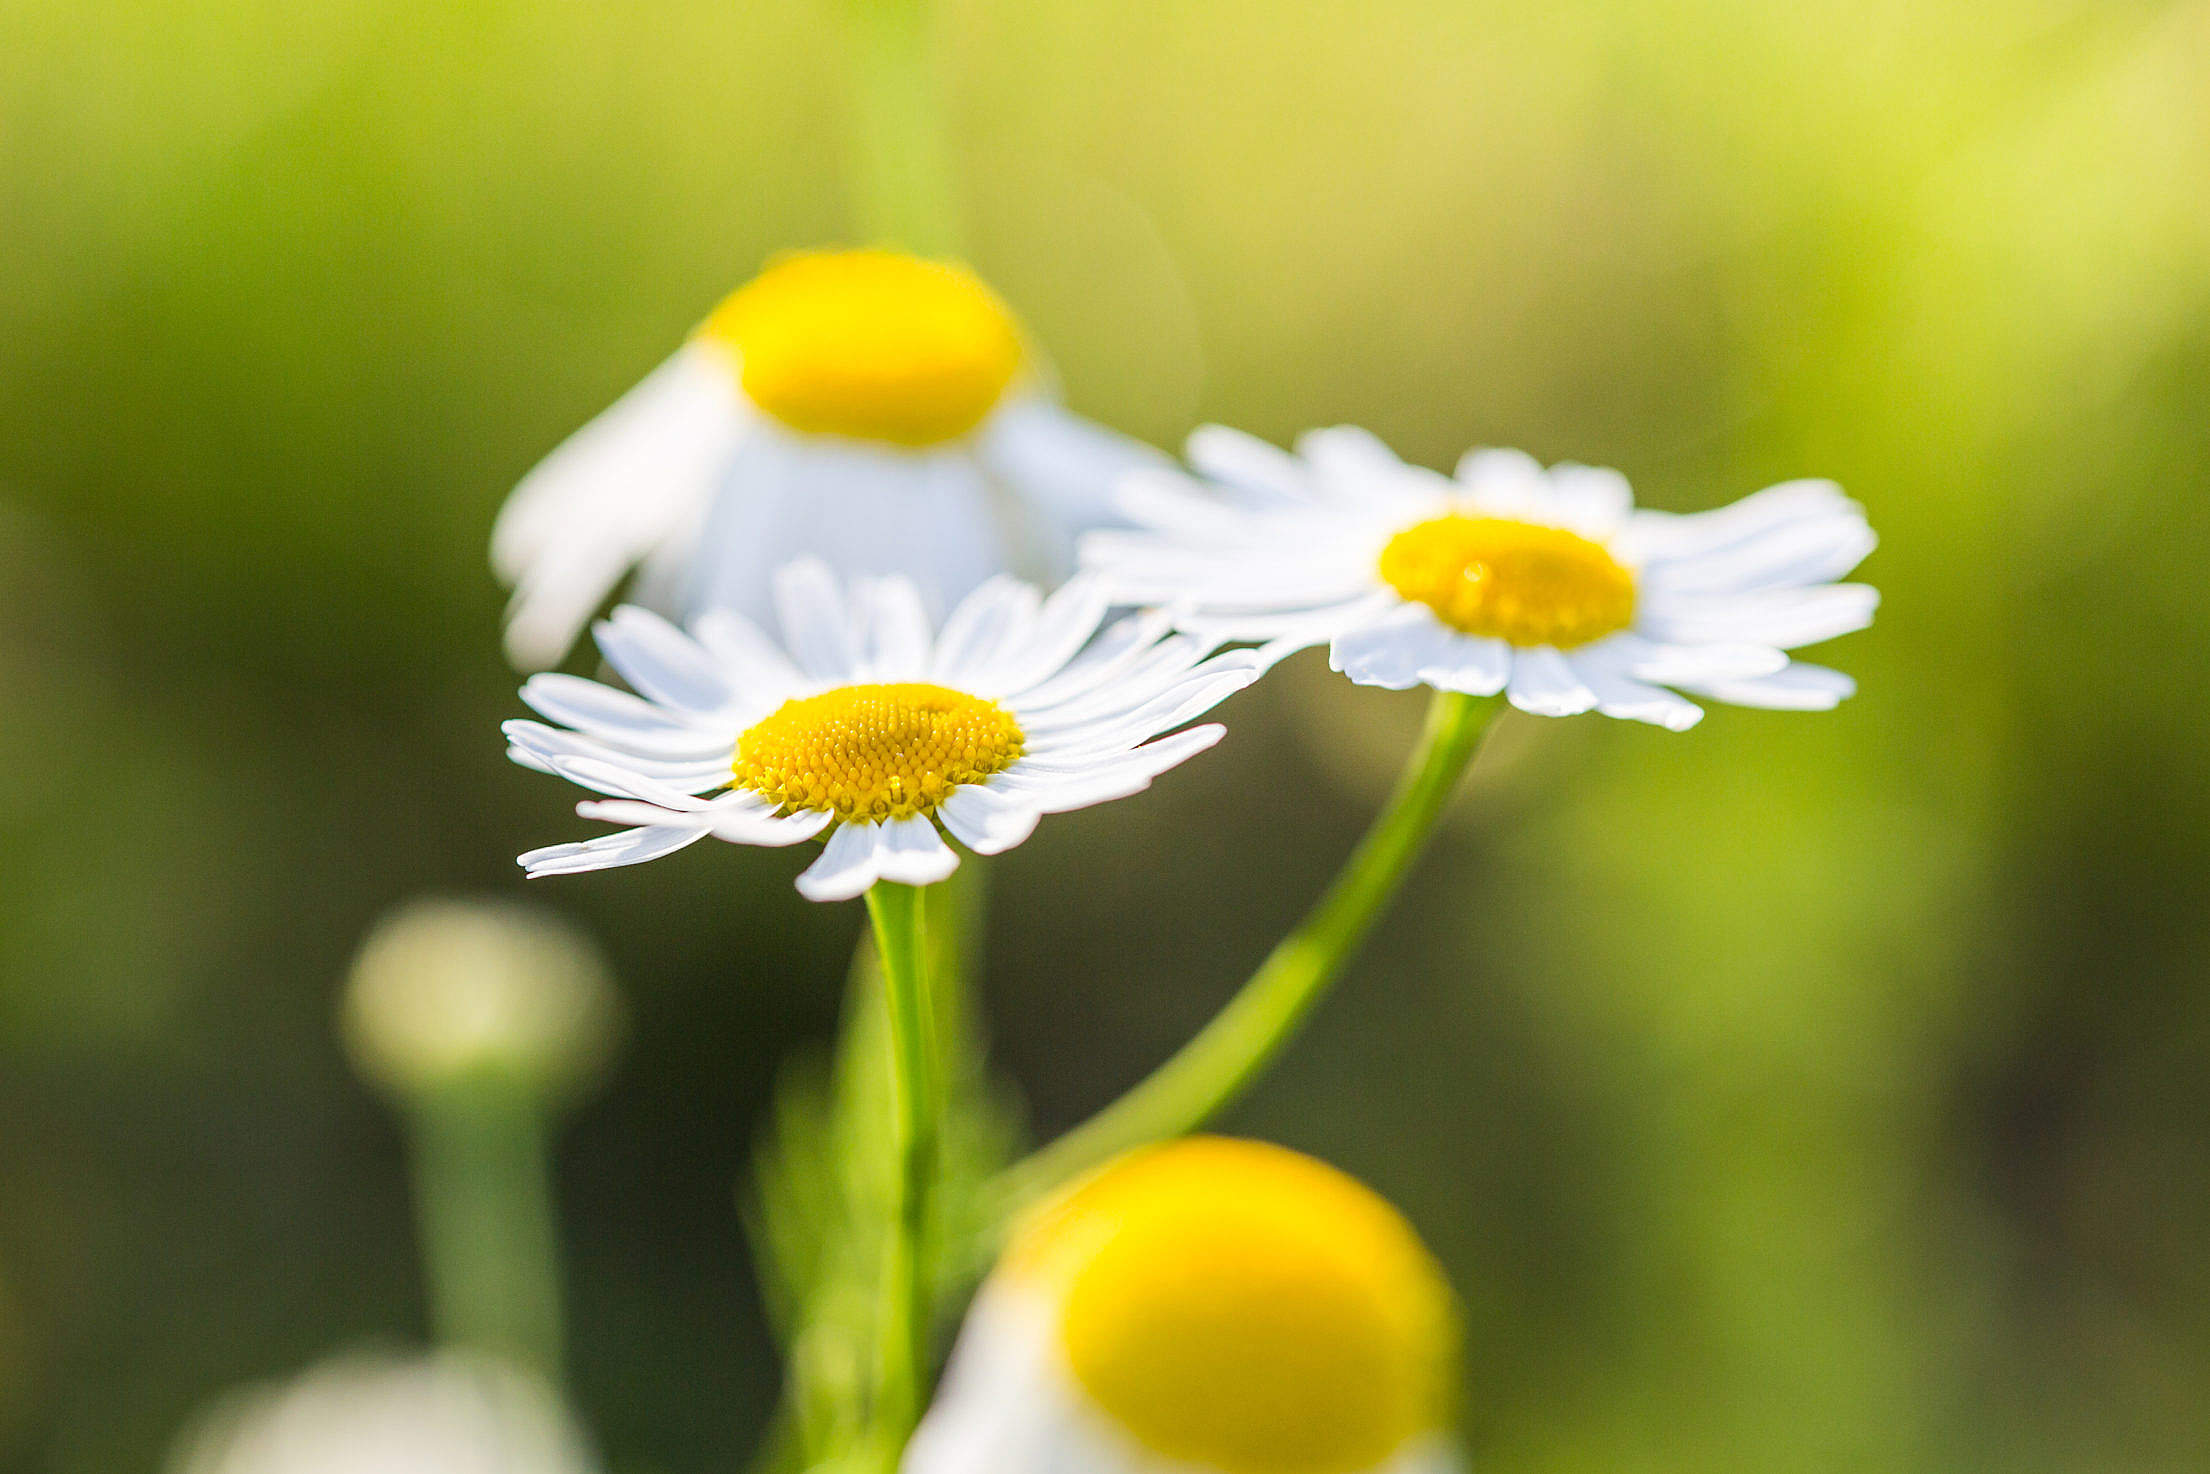 Wonderful Daisies with Bright Background Free Stock Photo